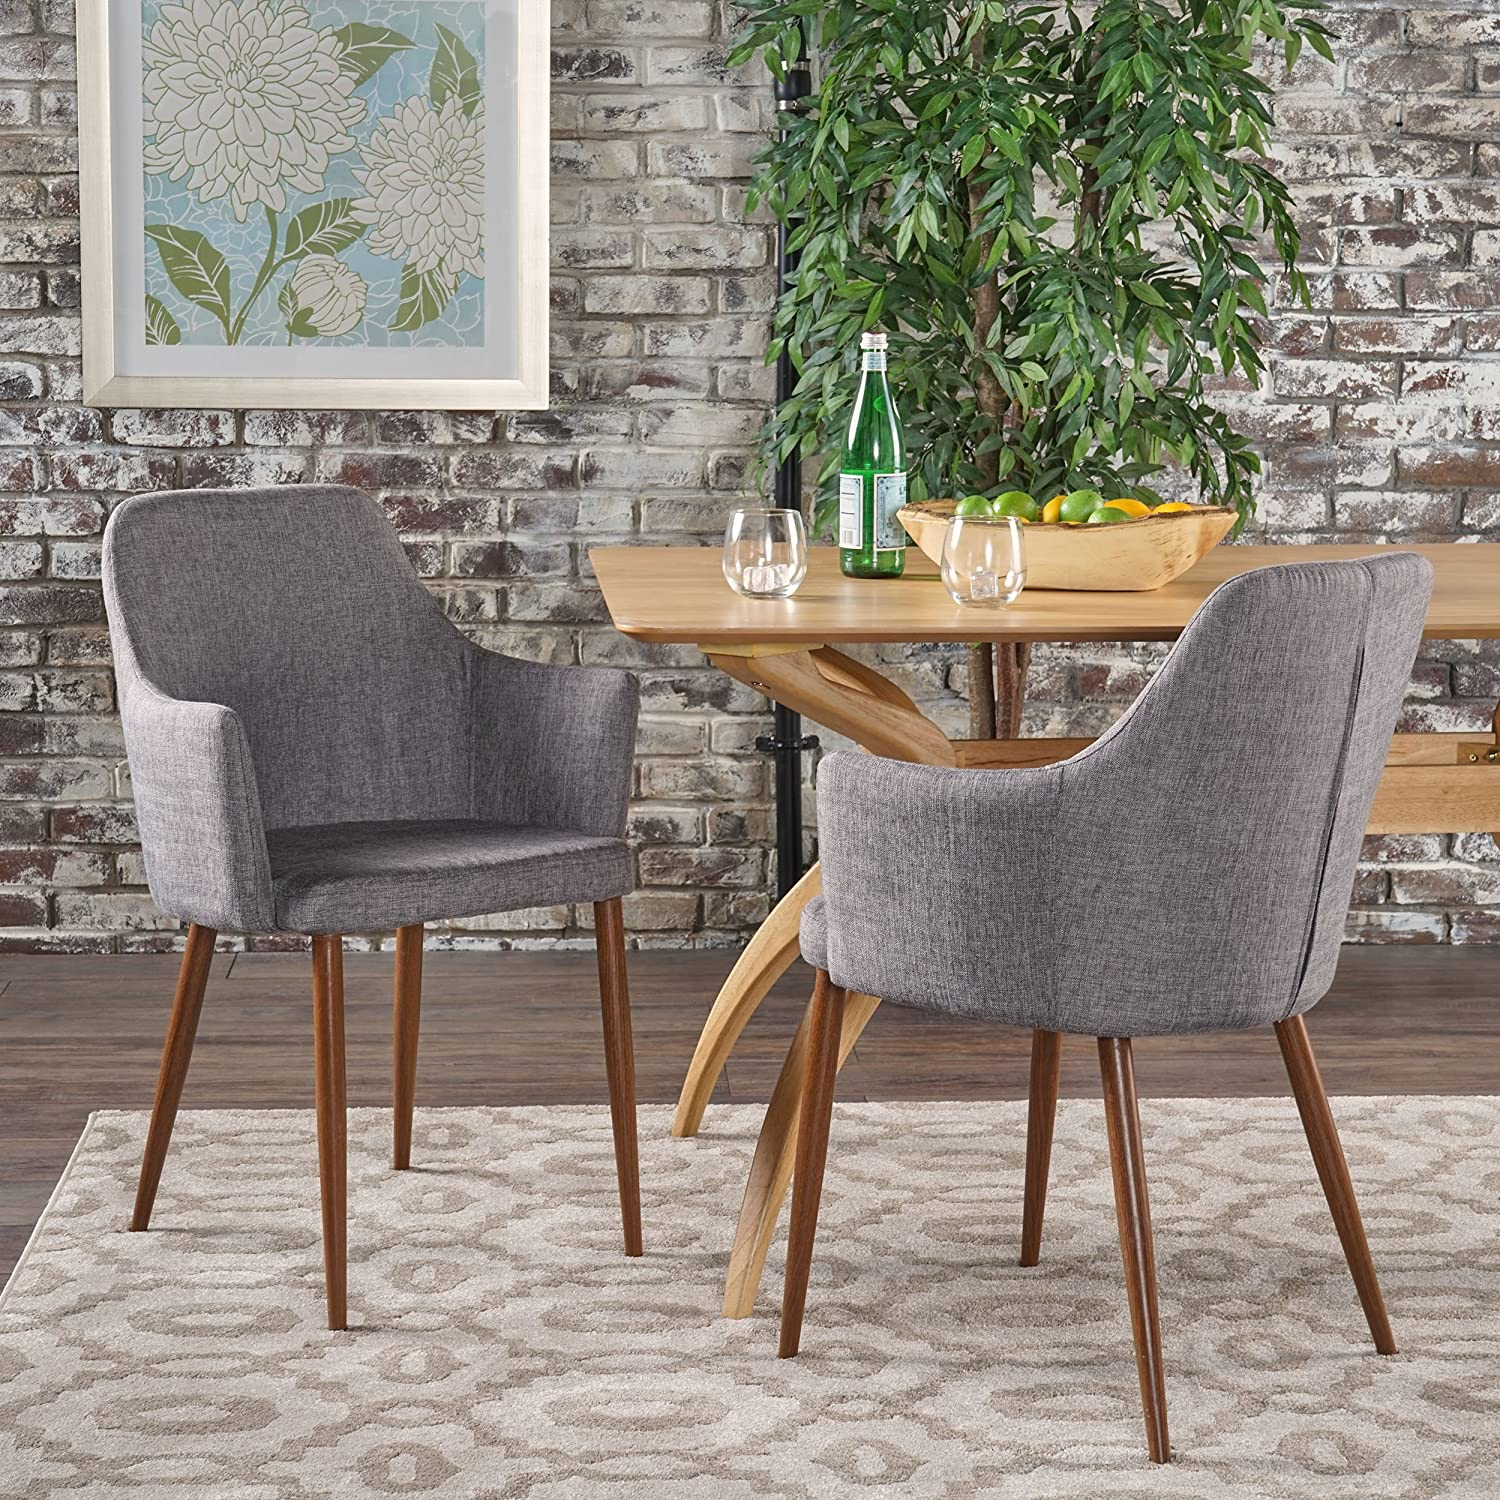 Christopher Knight Home 301733 Dining Chairs, Light Grey Dark Brown